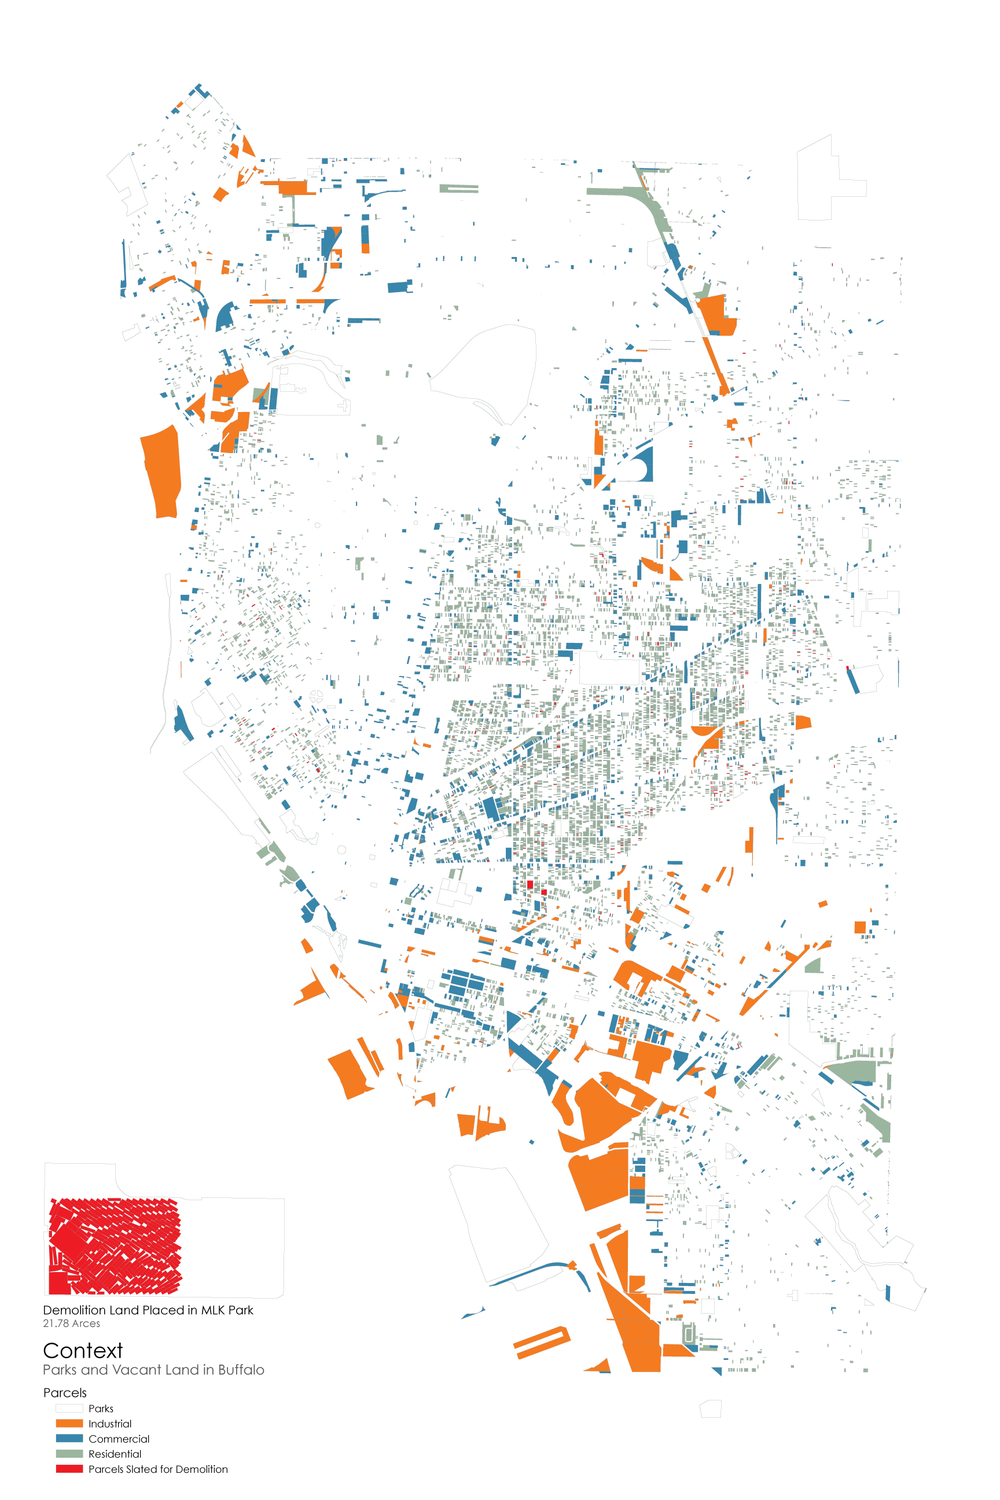 Map of all vacant land in Buffalo color coded by type.